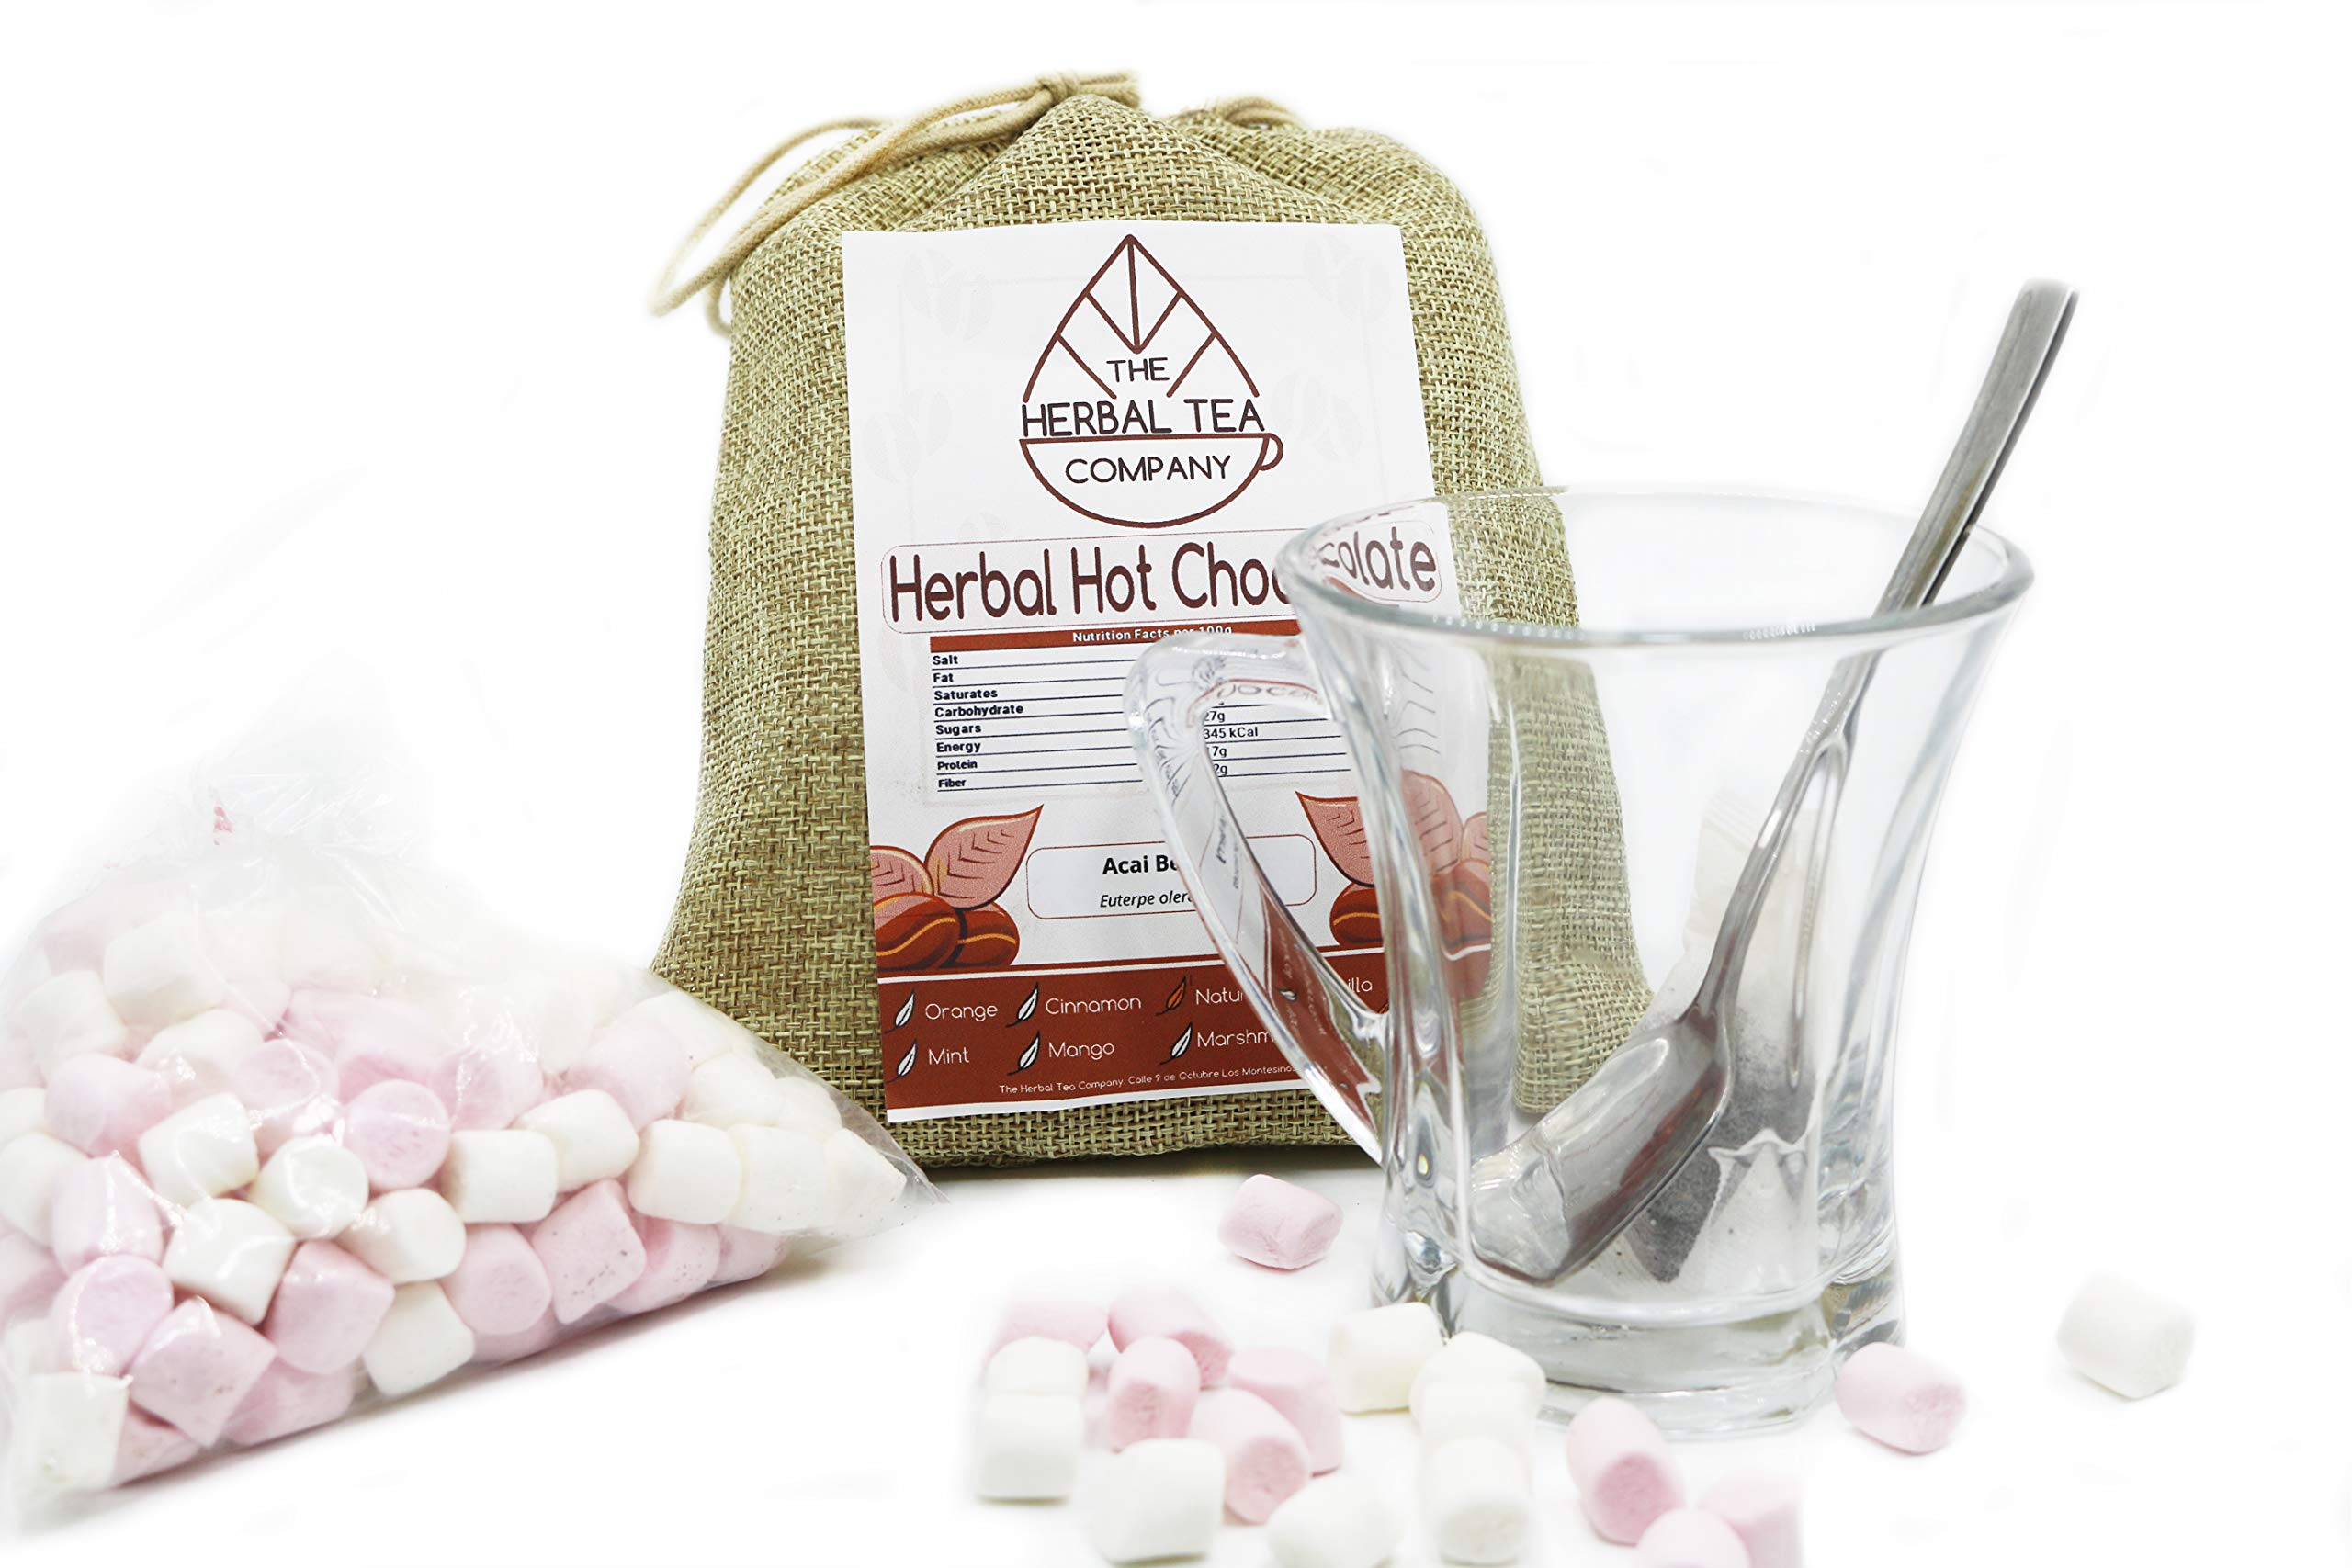 Herbal Hot Chocolate With Ashwagandha Root Organic and FREE Glass Cup Gift Set